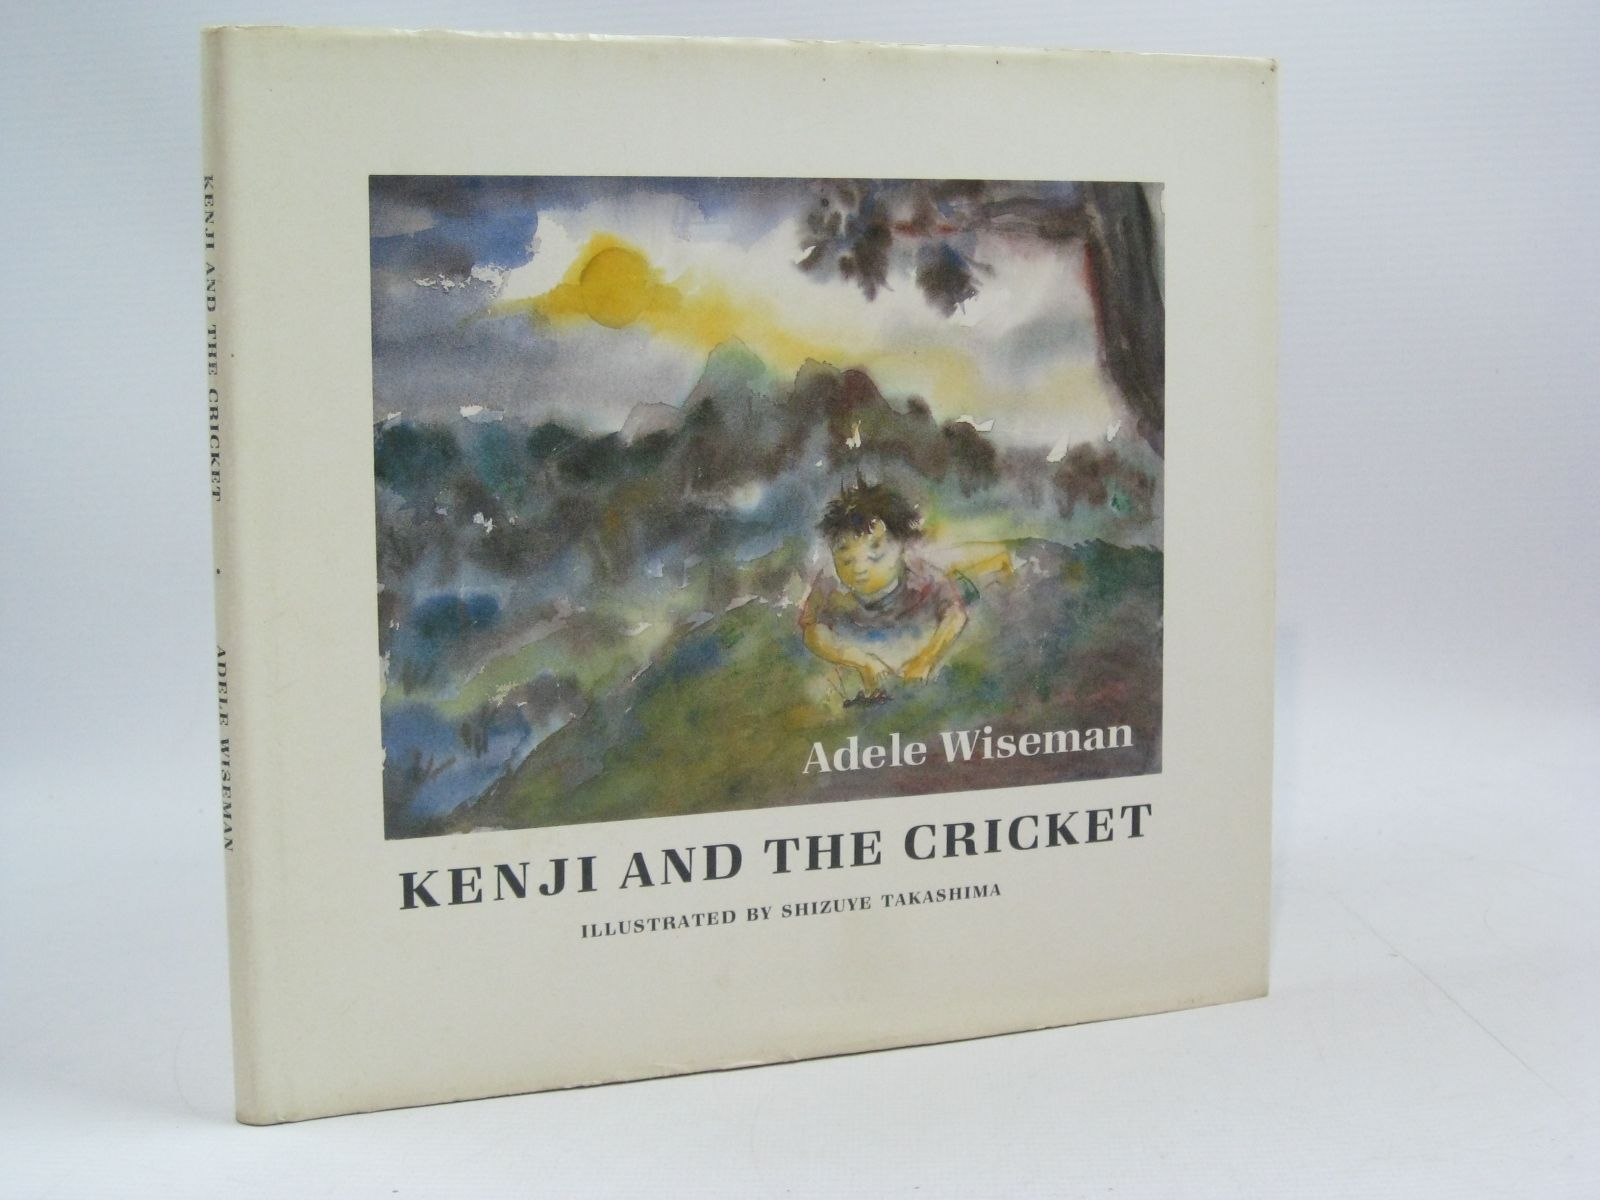 Photo of KENJI AND THE CRICKET written by Wiseman, Adele illustrated by Takashima, Shizuye published by The Porcupine's Quill (STOCK CODE: 1504438)  for sale by Stella & Rose's Books